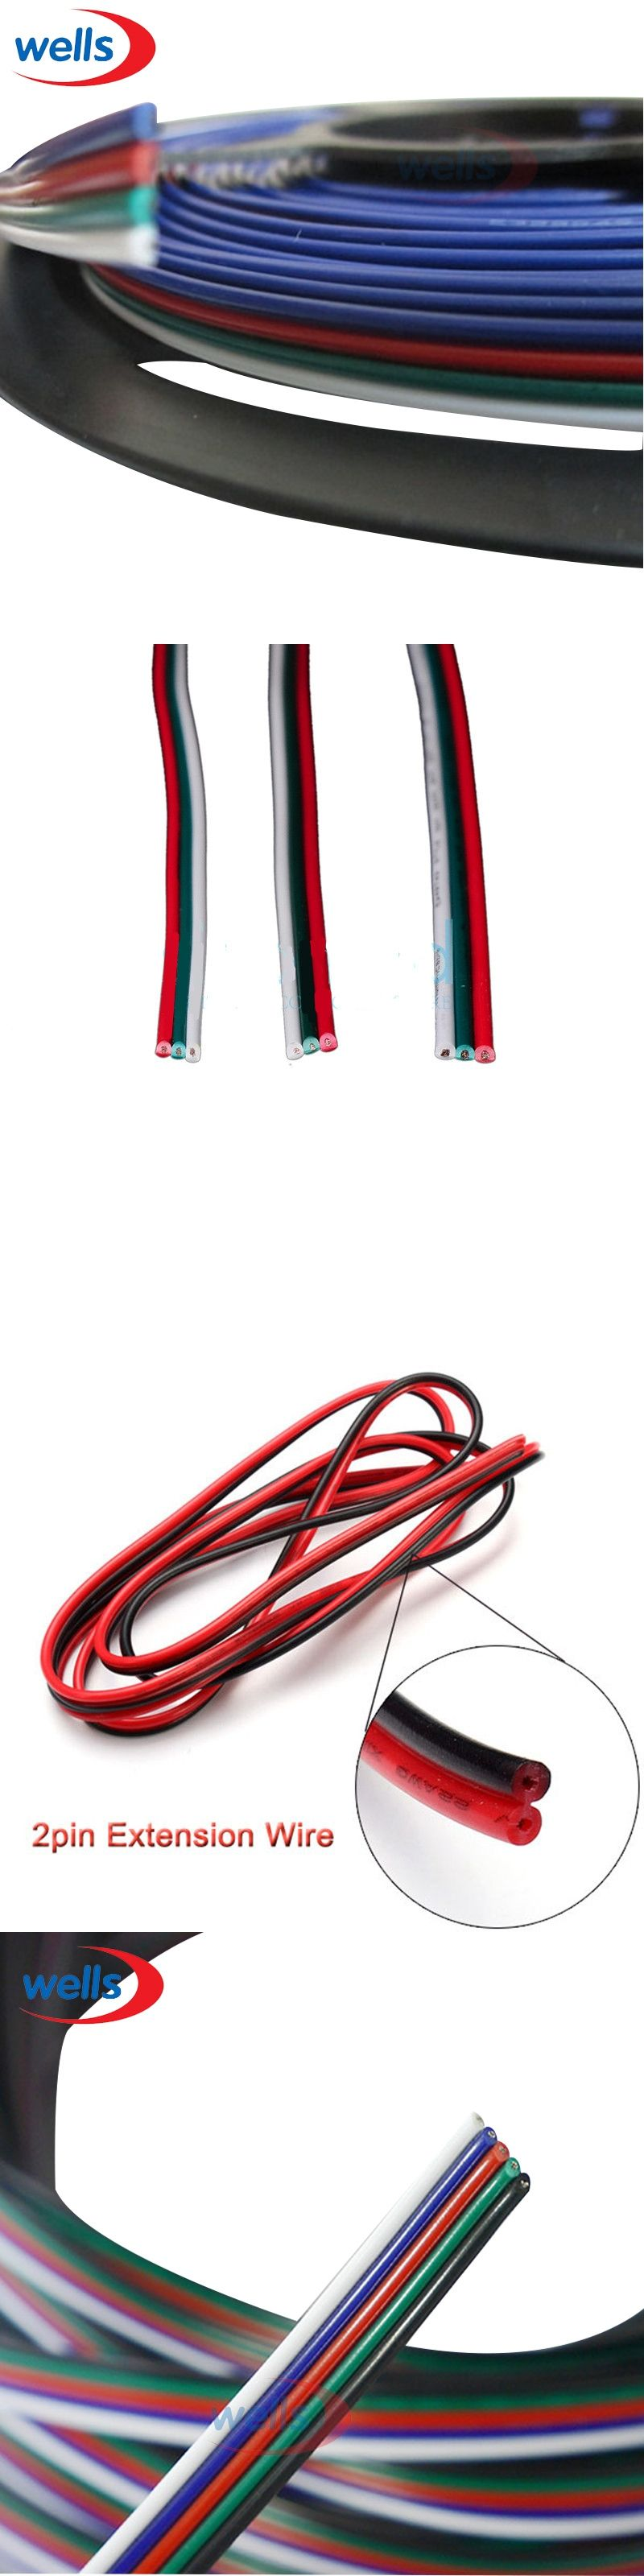 2m 5m 10m 2pin Wire 3pin 4pin 5pin Extension Wire22 Awg 4 Pin Led Wiring